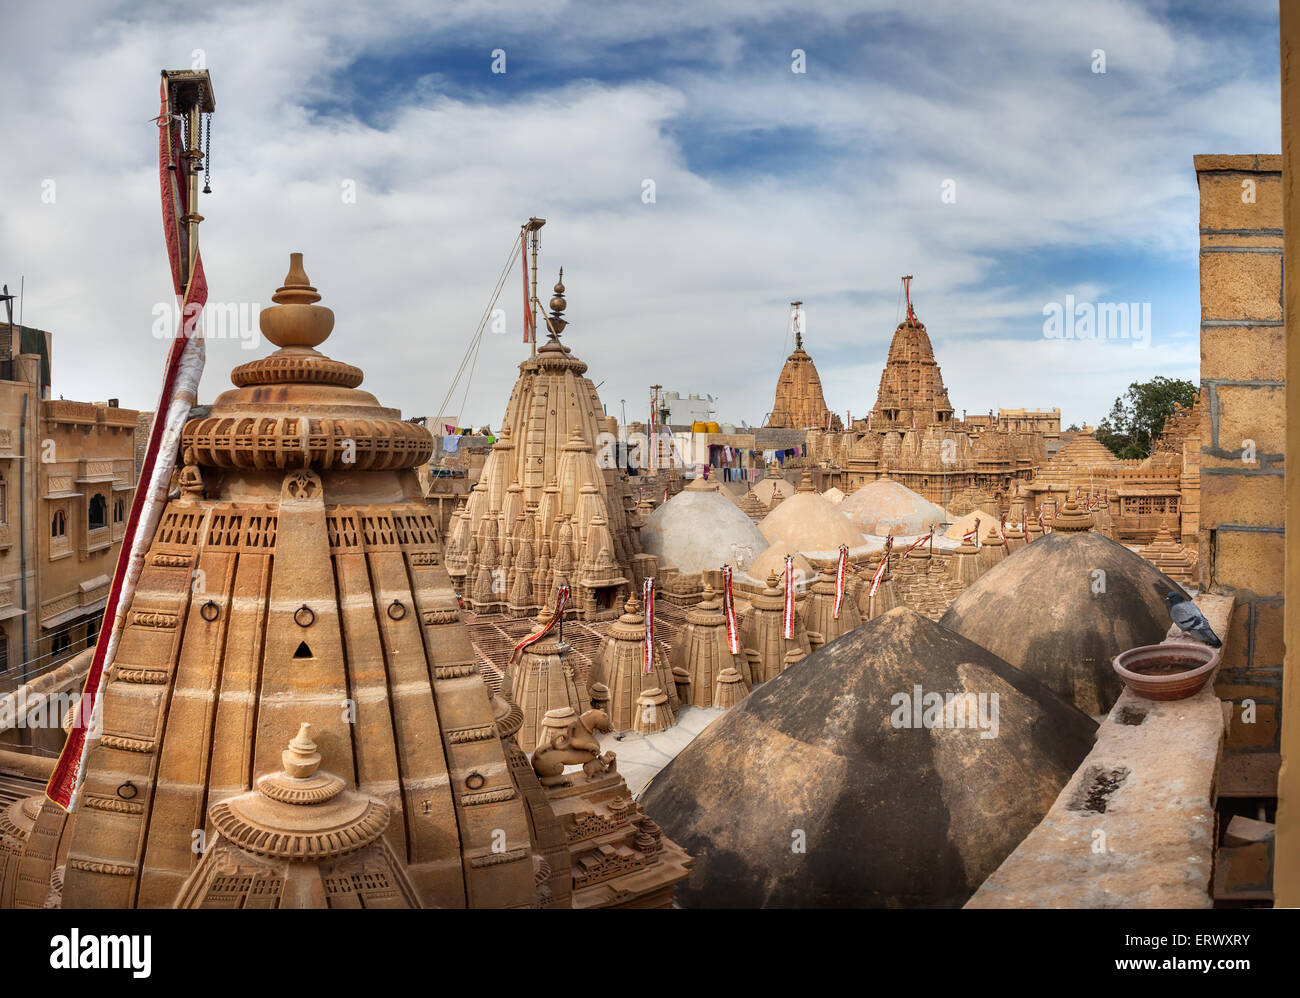 Jain temples from the top view in Jaisalmer fort, Rajasthan, India - Stock Image